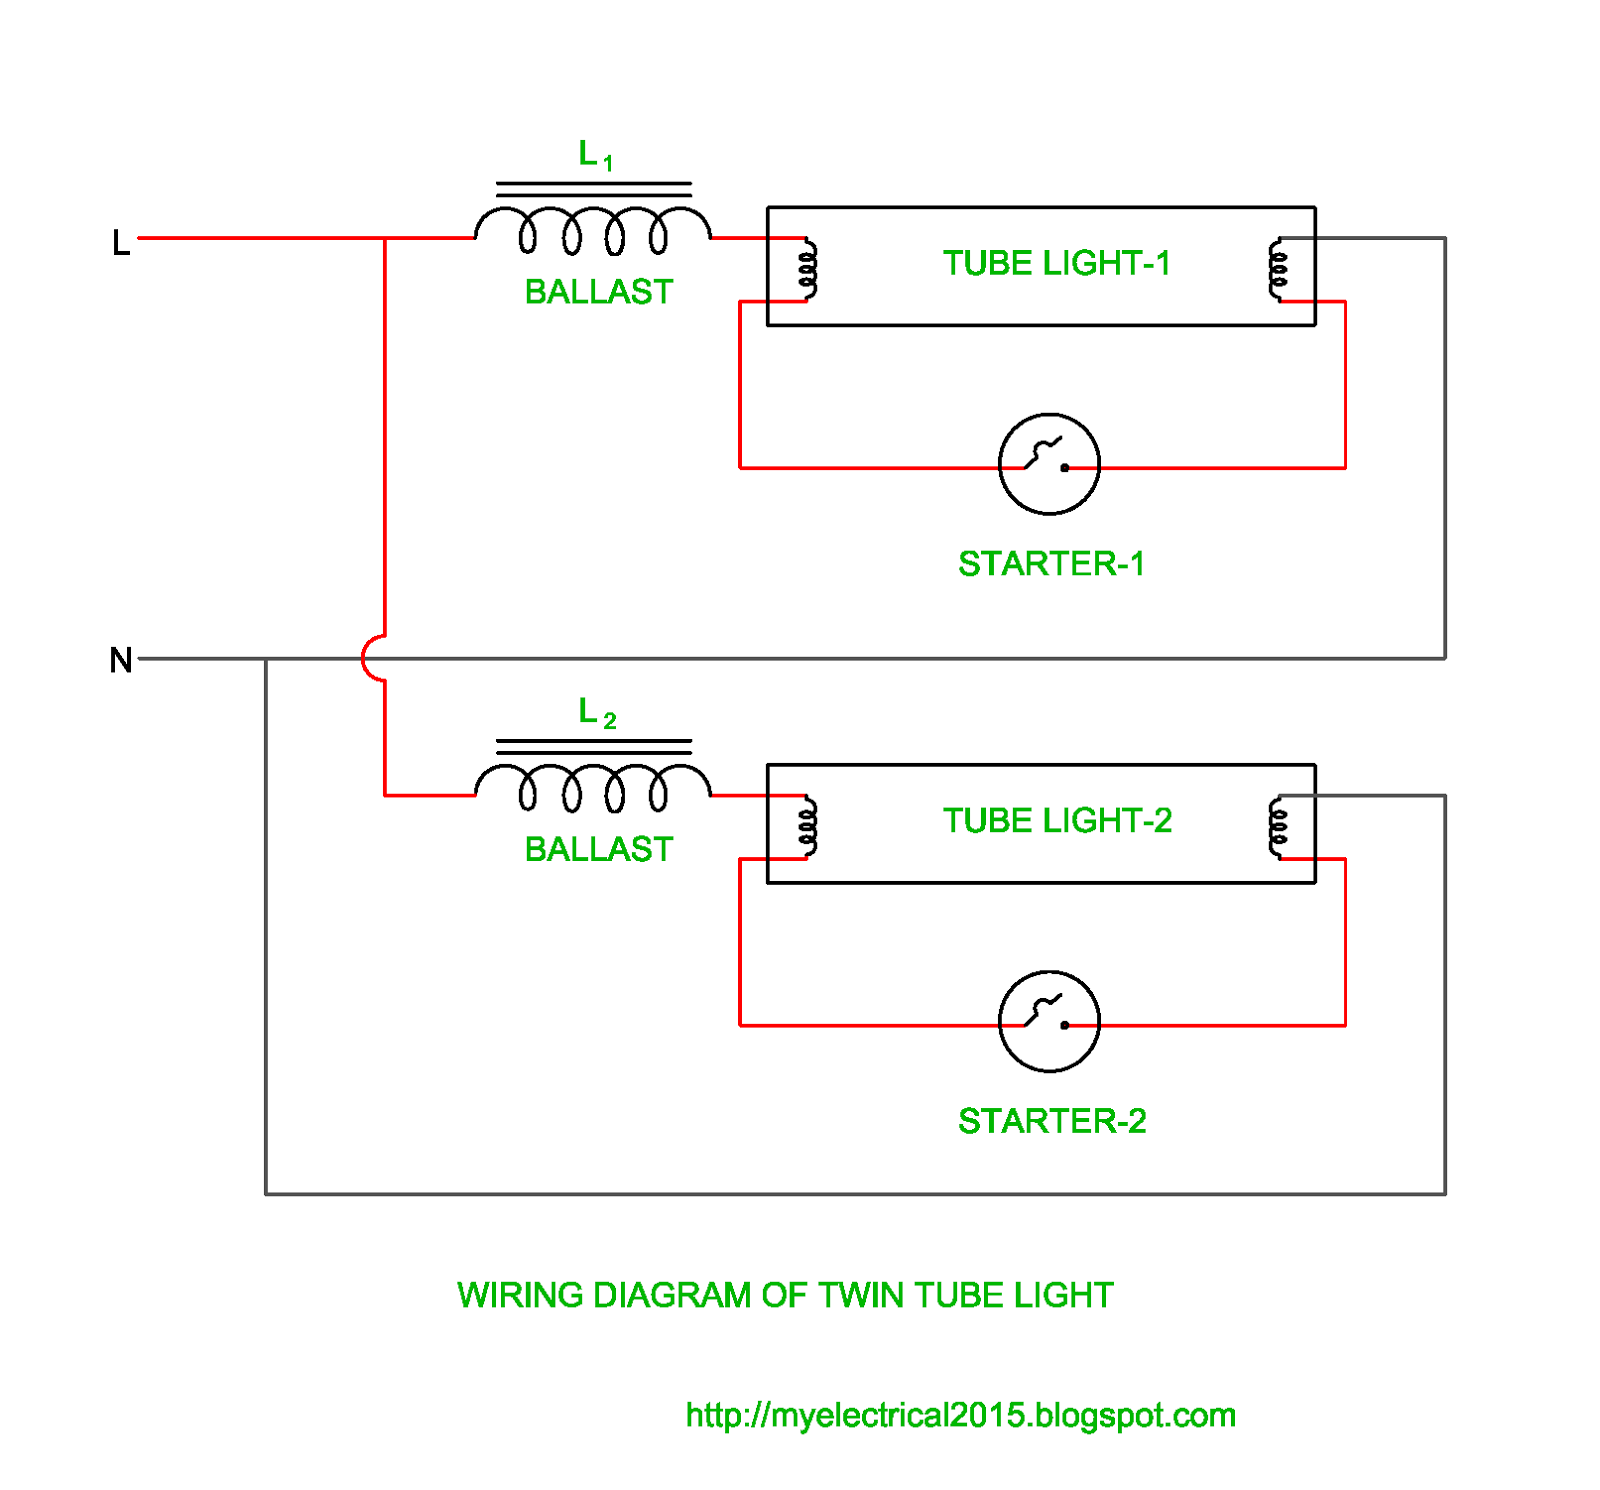 hight resolution of wiring diagram of twin tube light